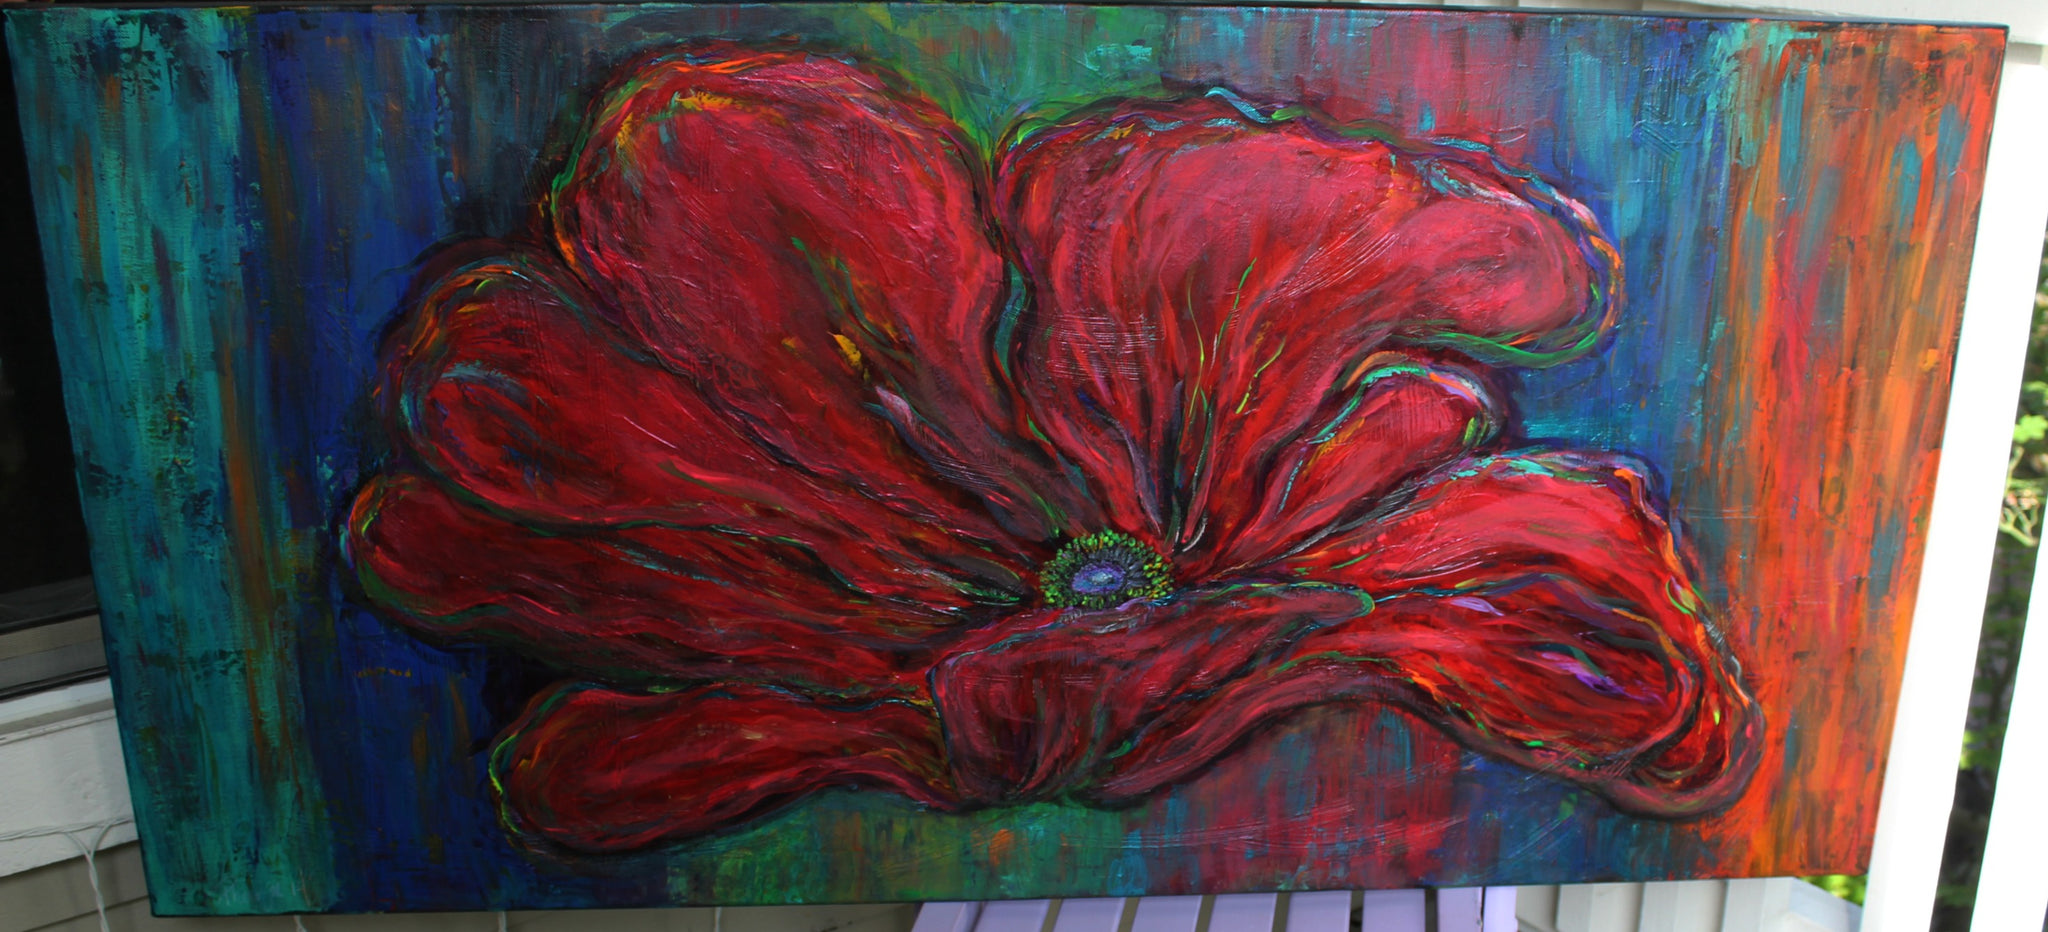 48 in x 24 in Poppy Painting that Pops with UV Reactive Highlights